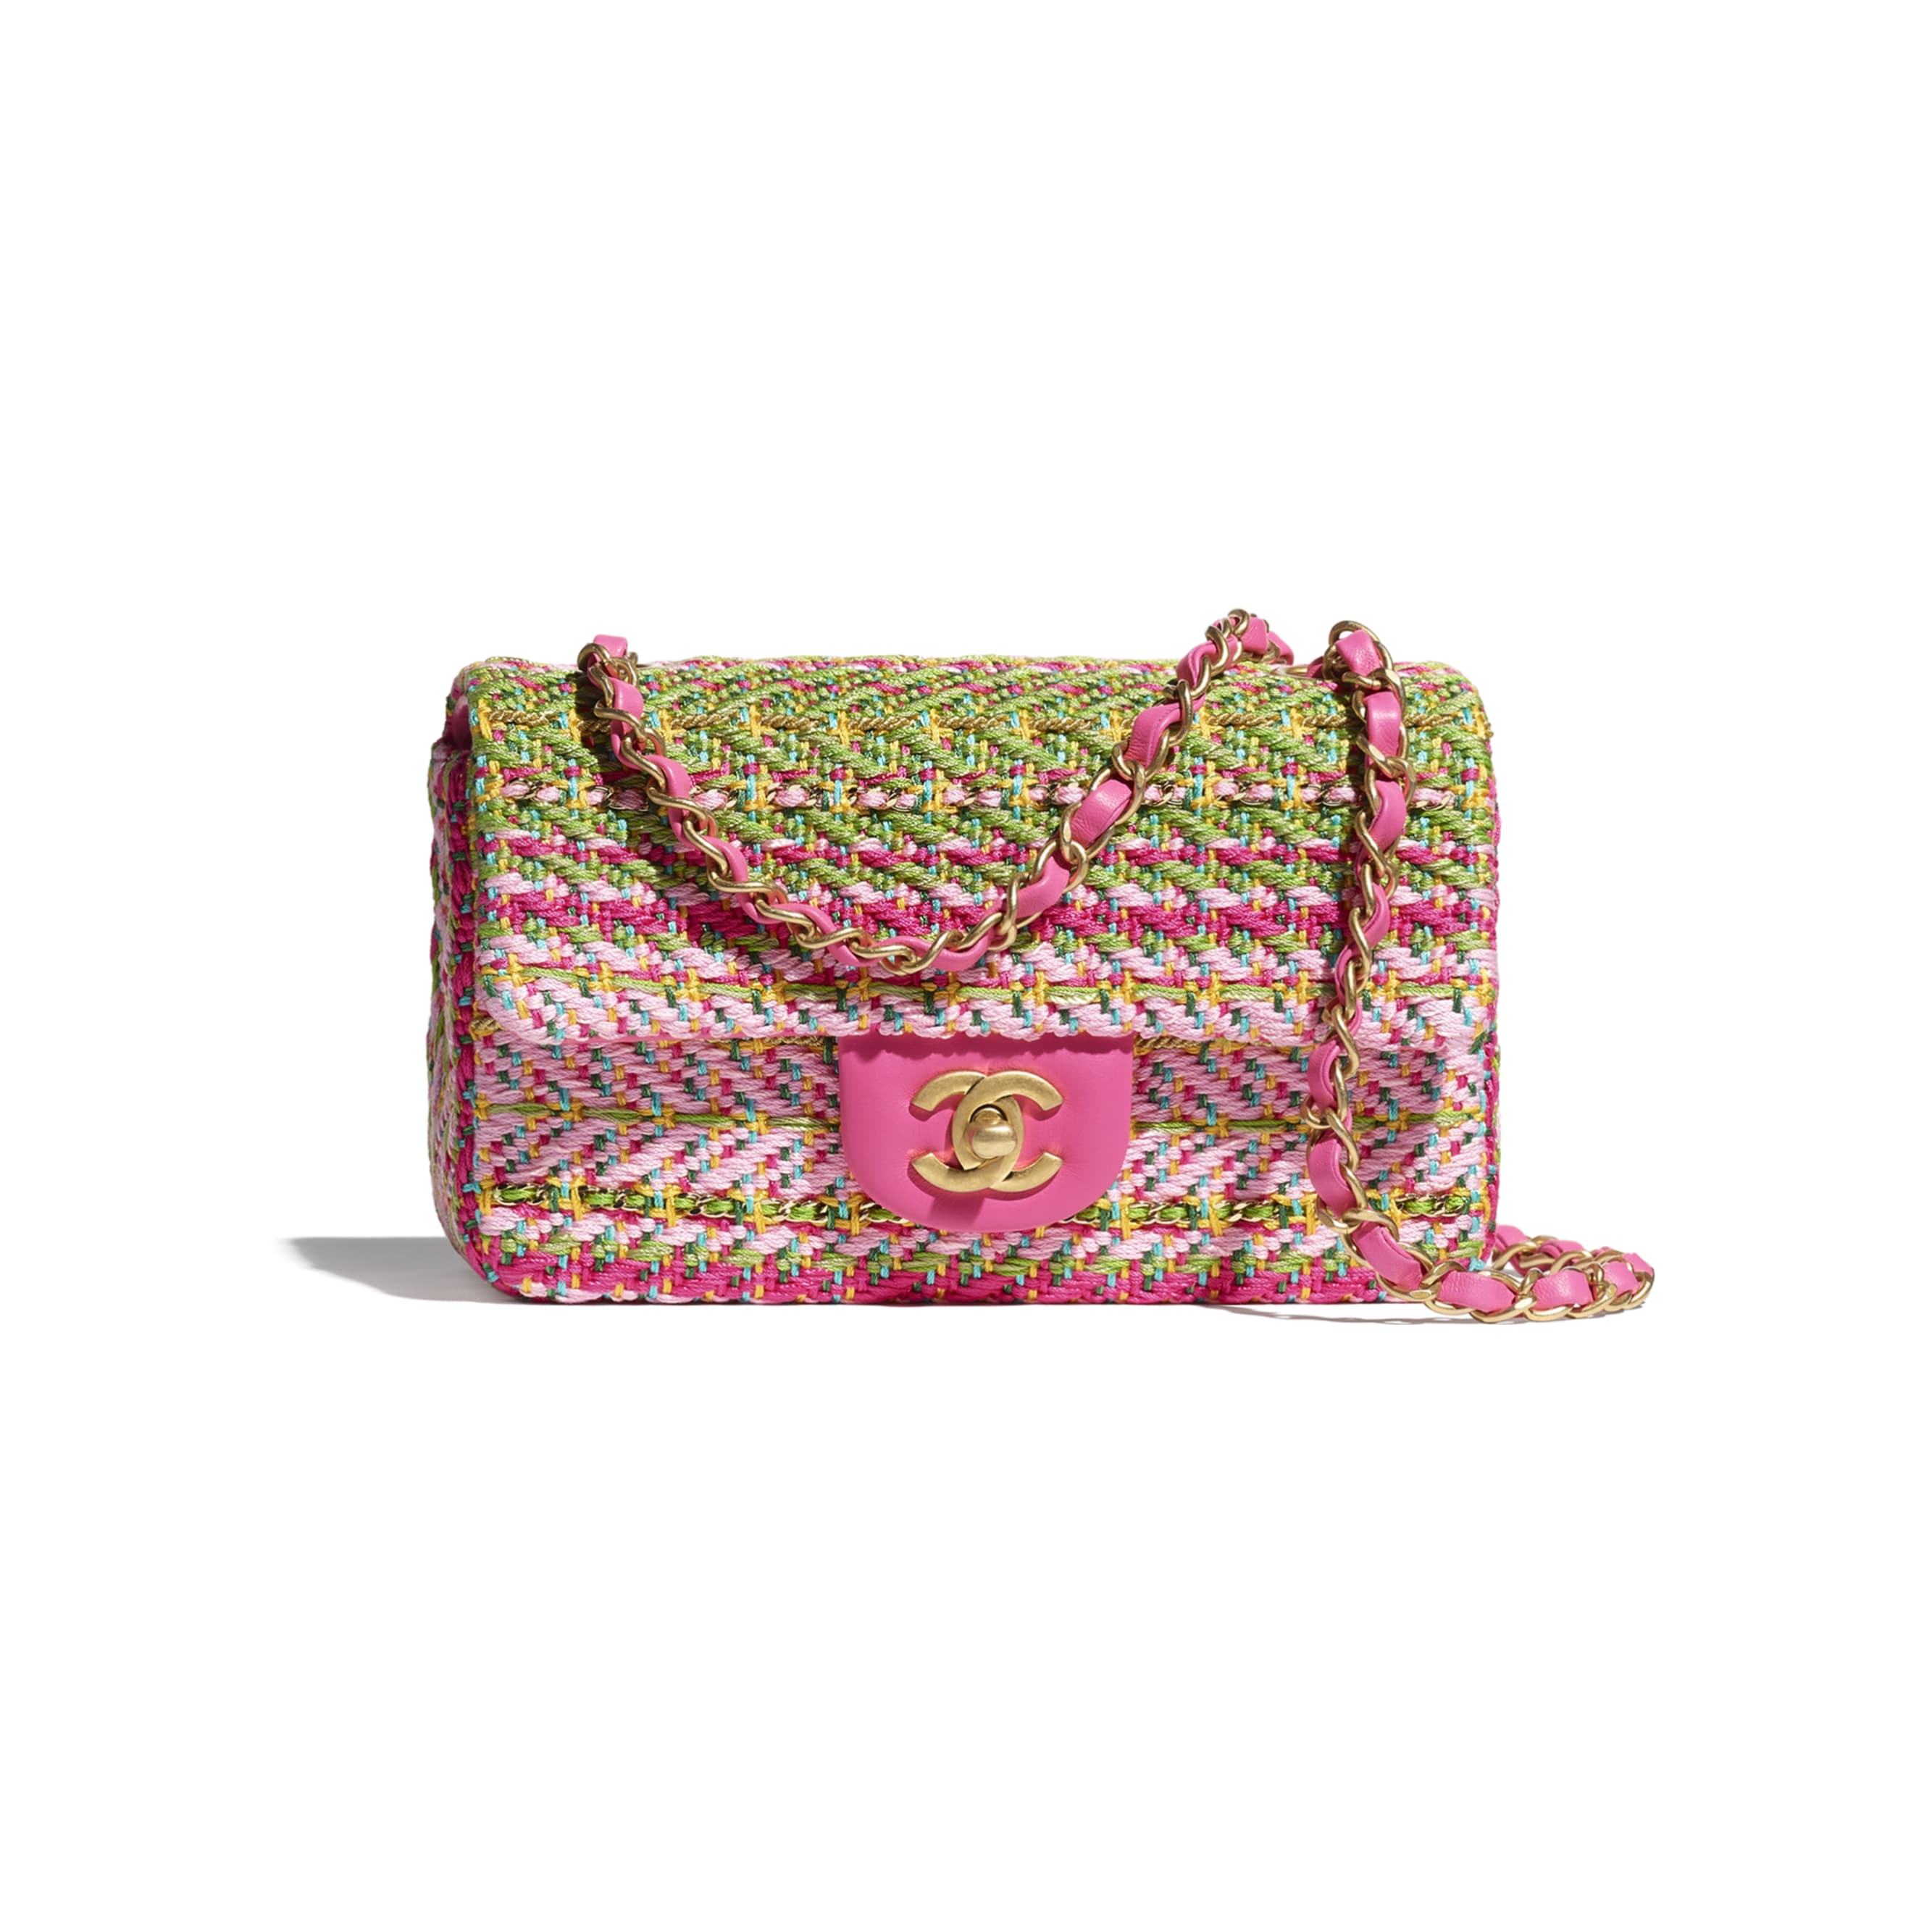 Mini Flap Bag - Fuchsia, Pale Rose, Green, Turquoise & Yellow - Cotton, Mixed Fibers & Gold-Tone Metal - CHANEL - Default view - see standard sized version